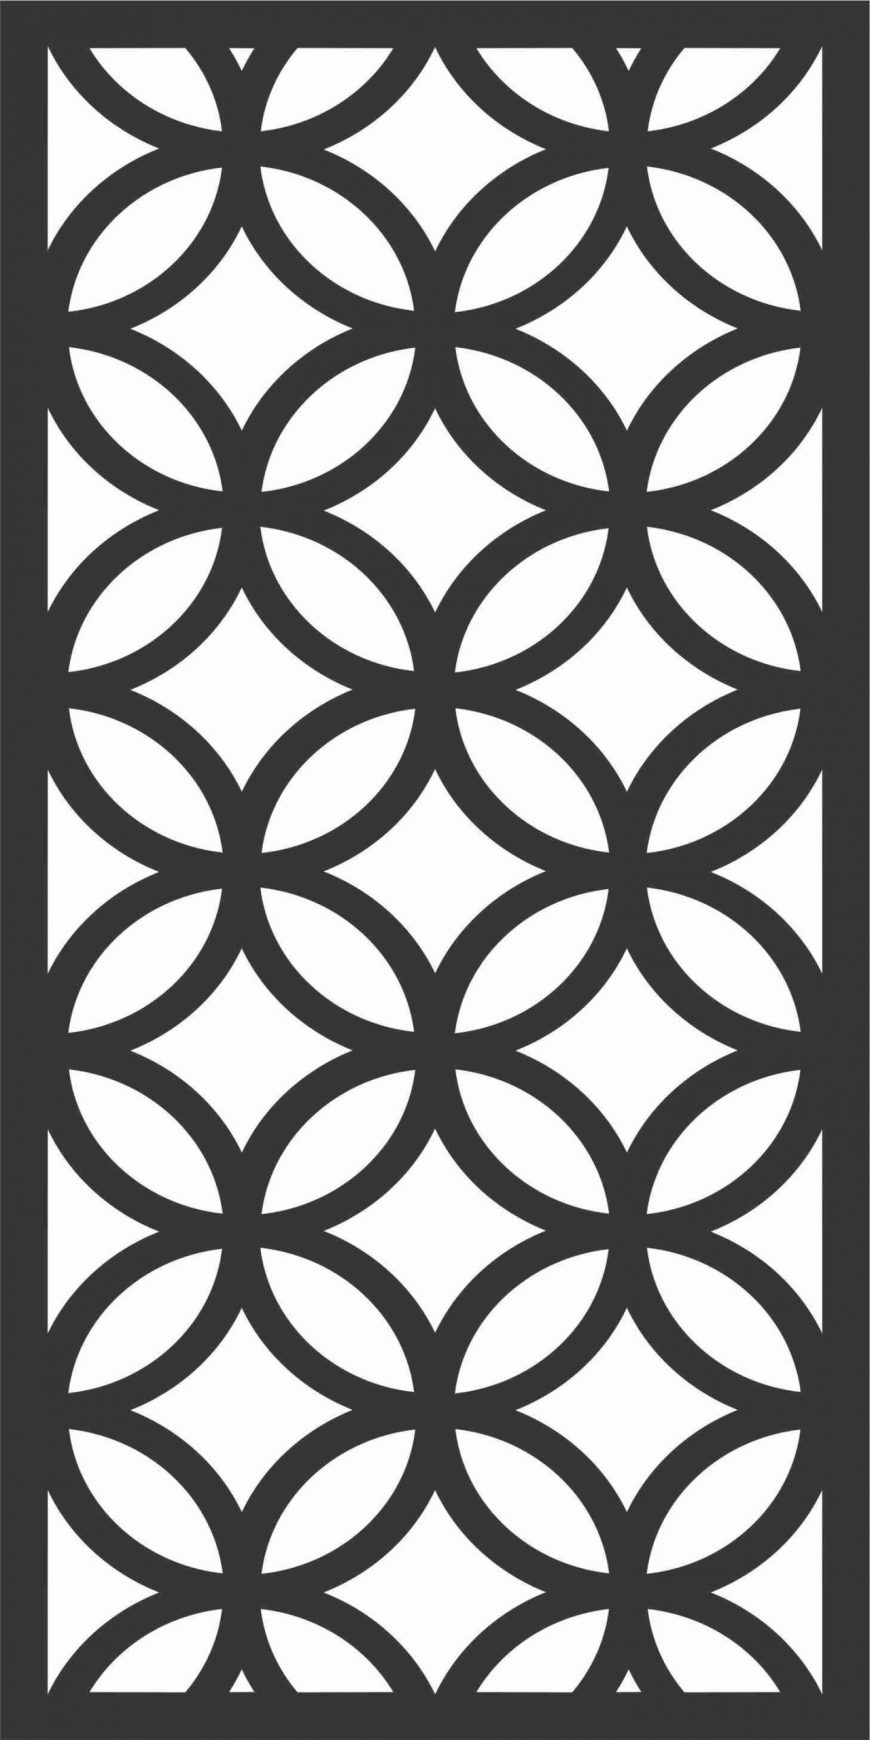 Decorative Screen Patterns For Laser Cutting 169 Free DXF File